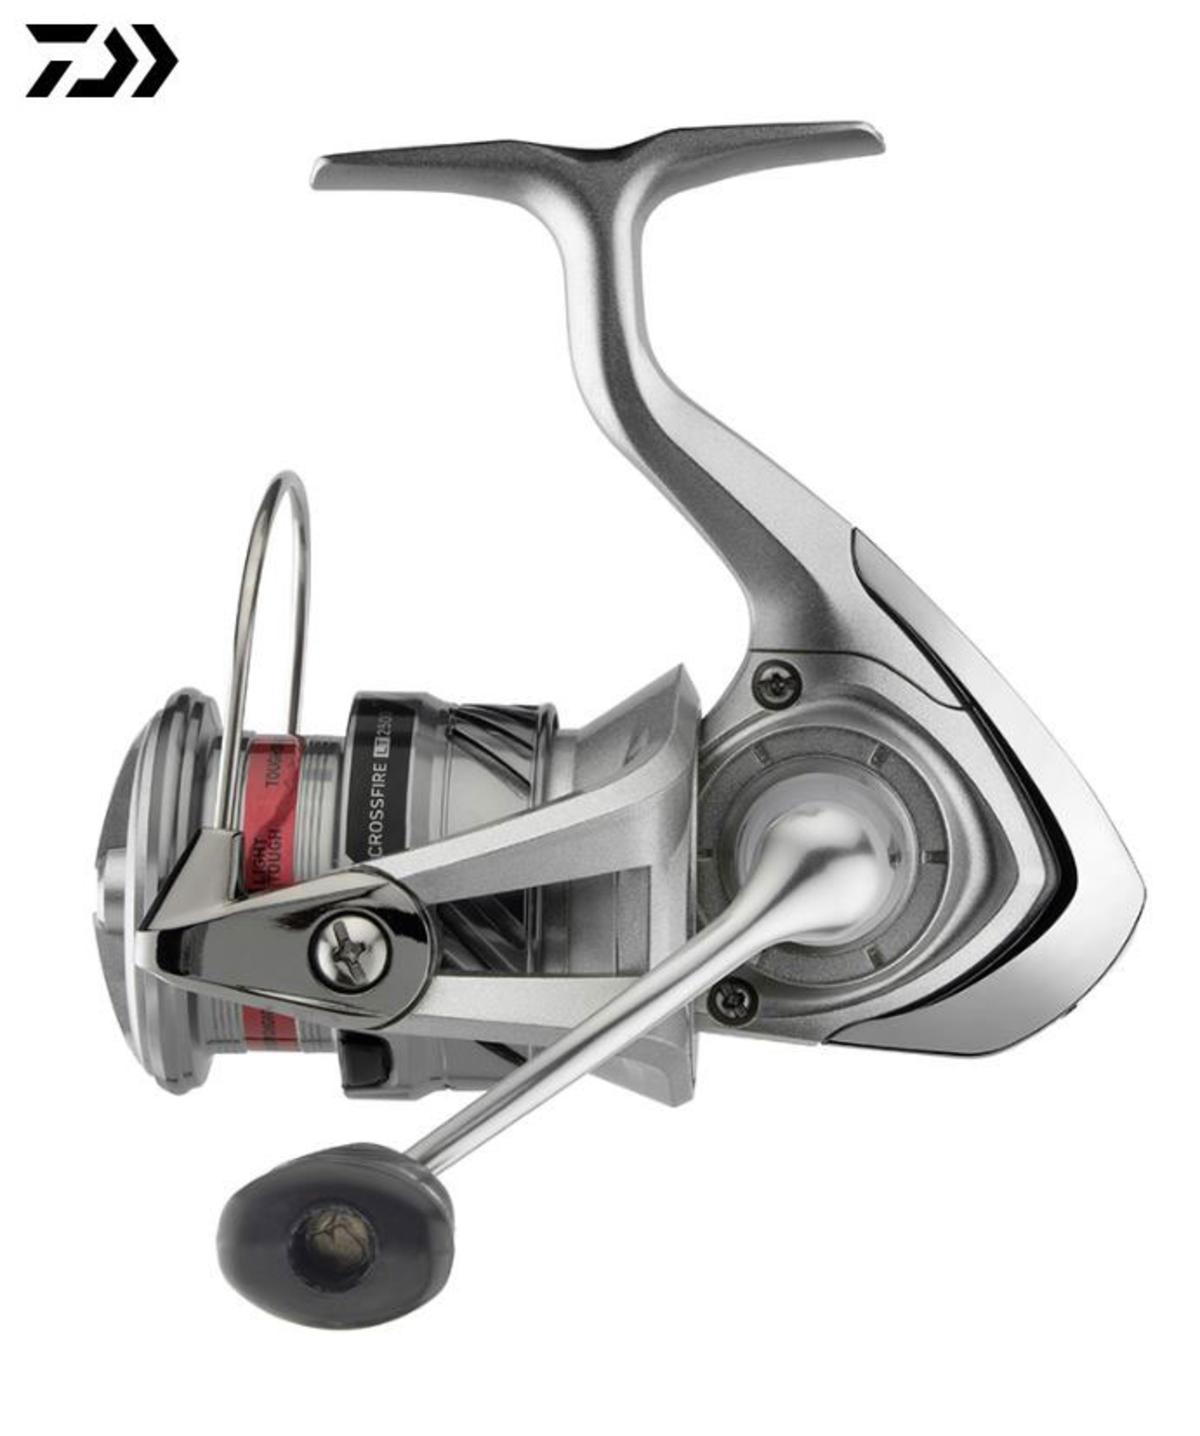 New Daiwa 20 Crossfire LT Spinning Fishing Reel - All Models